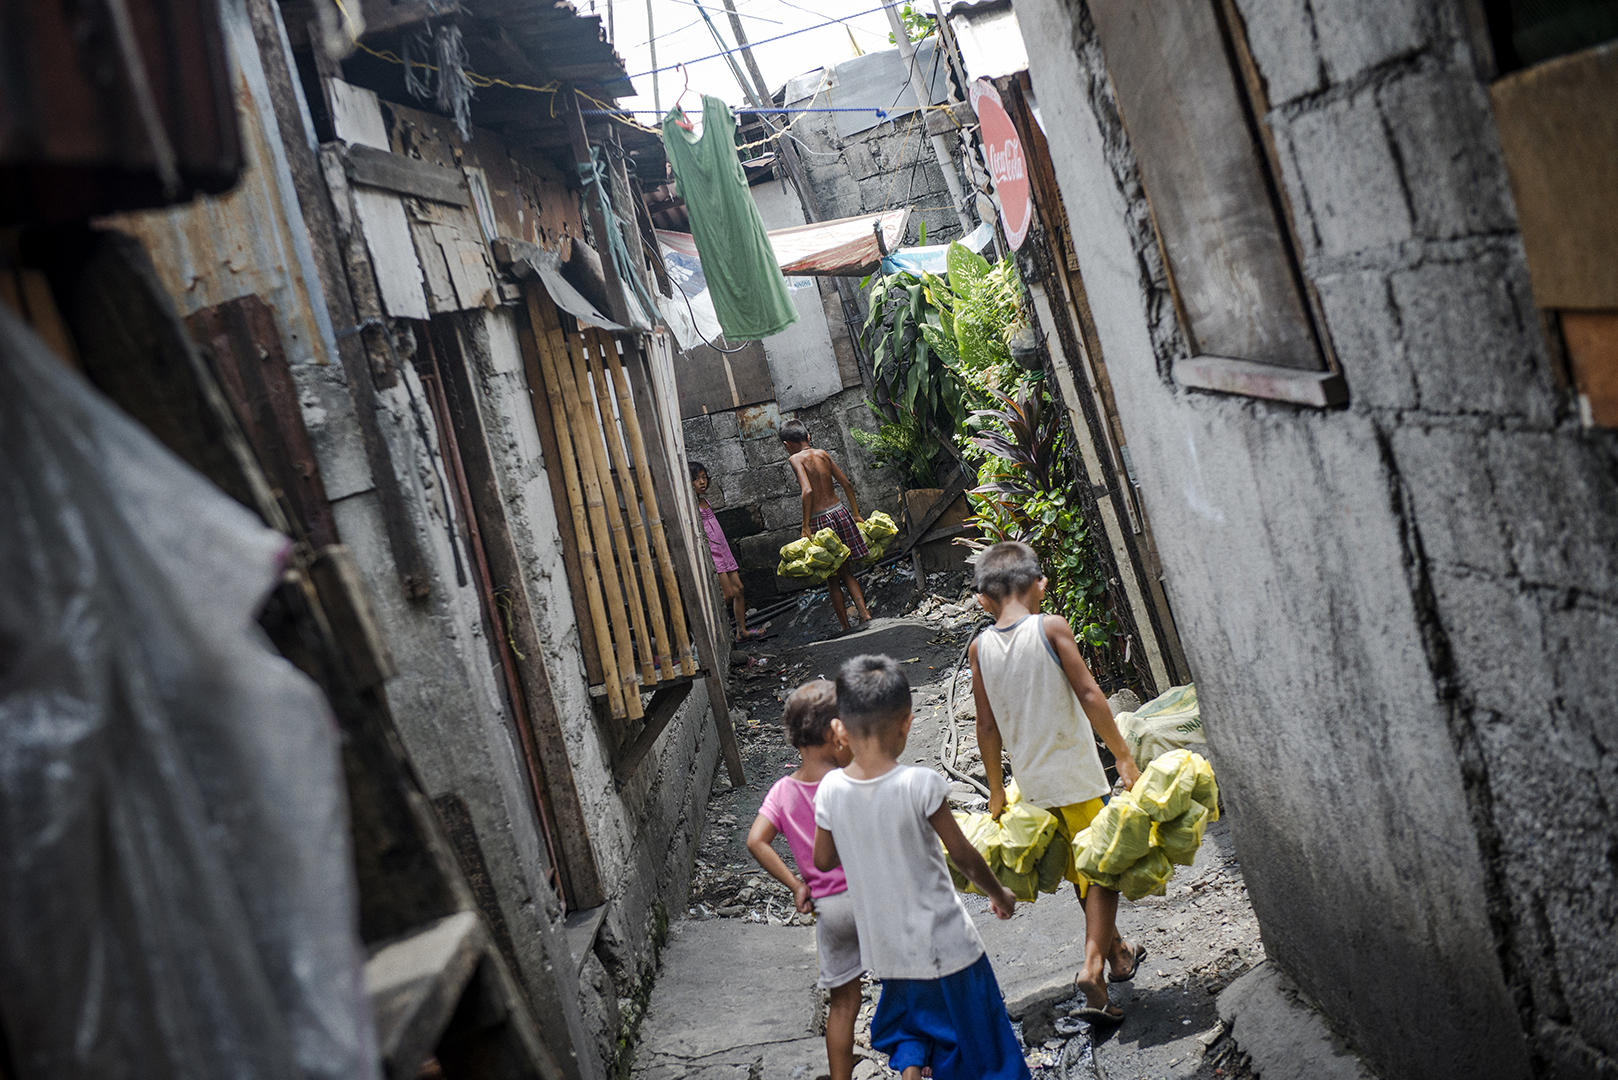 Kids in the community start helping their parents from a very early age. The youngest to be paid for their work are about 7- 8 years old, but even earlier kids help their older siblings and parents, they live in the area and are constantly exposed to the toxic smoke. Malabon, Philippines, 2017